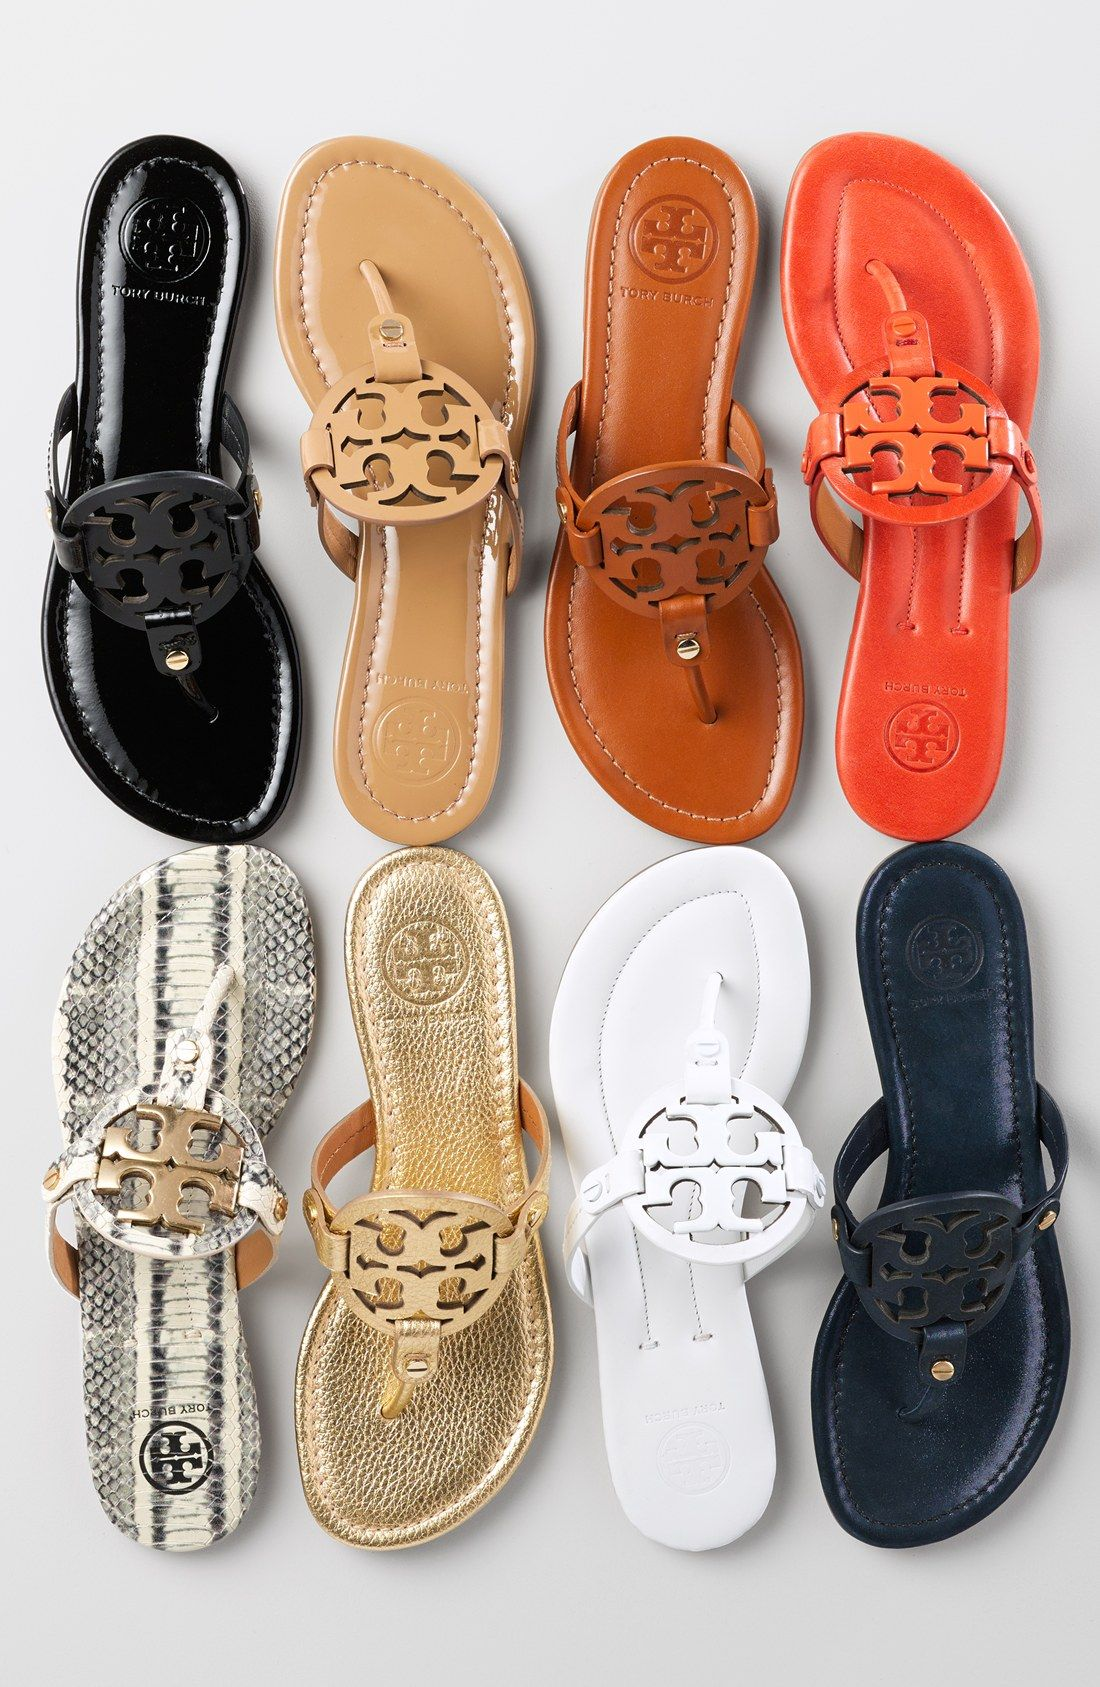 3a28cb400d313 Tory Burch Miller sandals